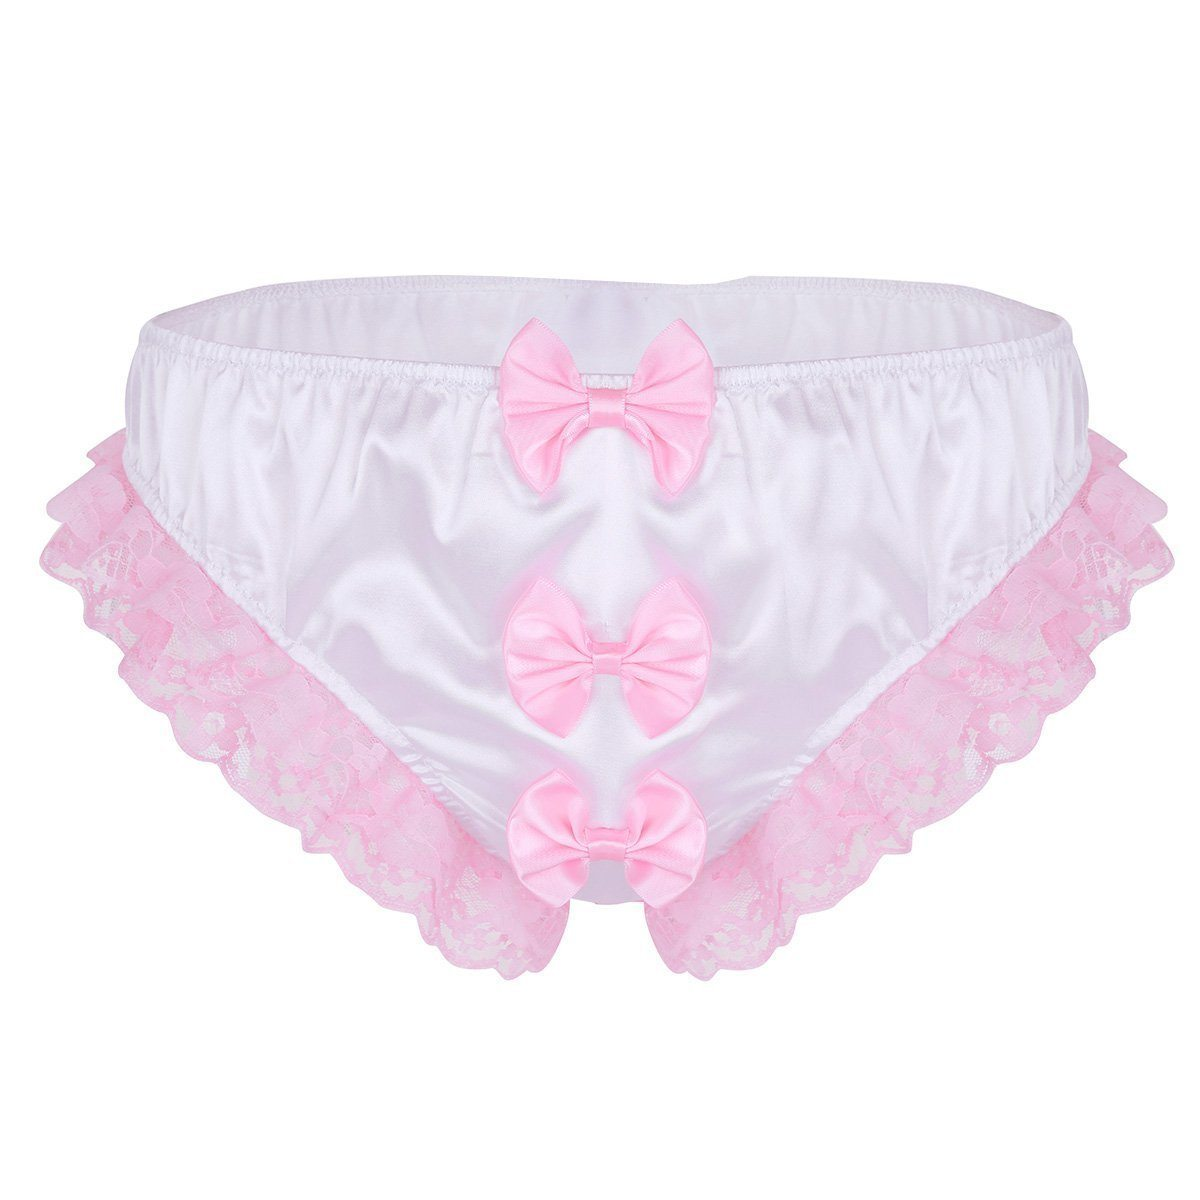 Shiny Ruffles Floral Lace with Bowknots Briefs